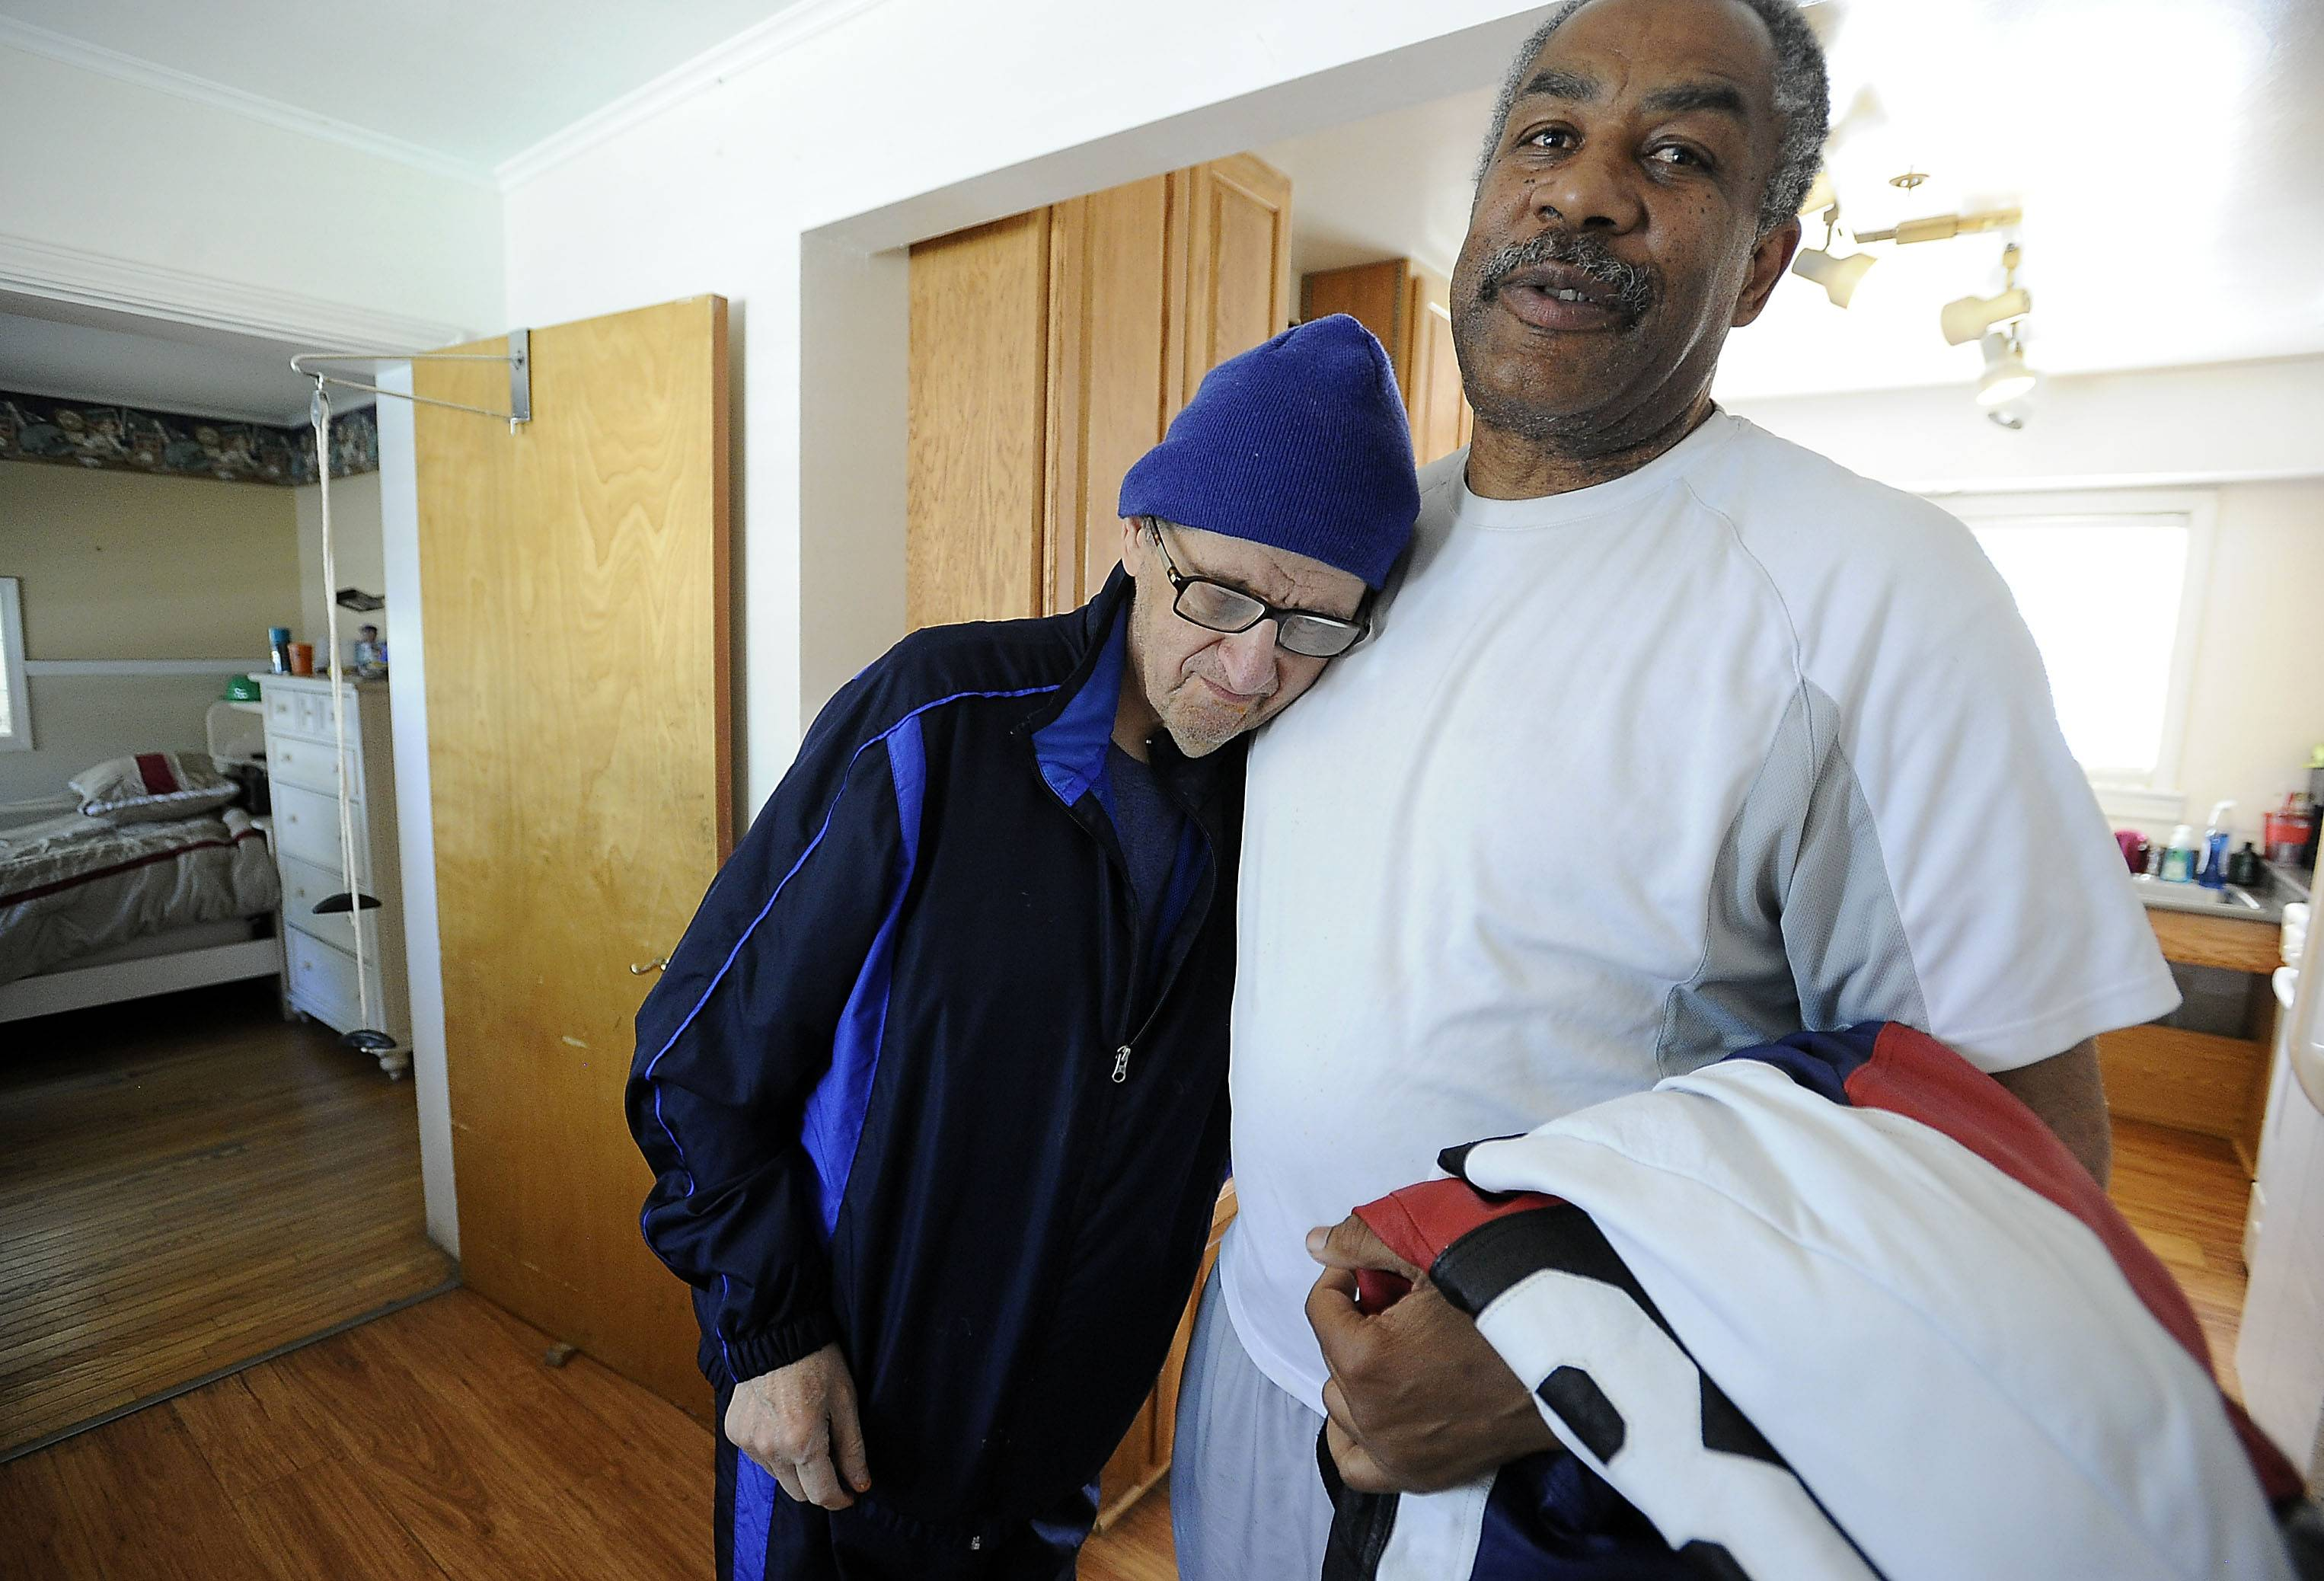 Just home from work, Cambridge House resident Billy Yacilla hugs caregiver Gregory Mathis, who has received only $1.70 in raises in his 12 years on the job.